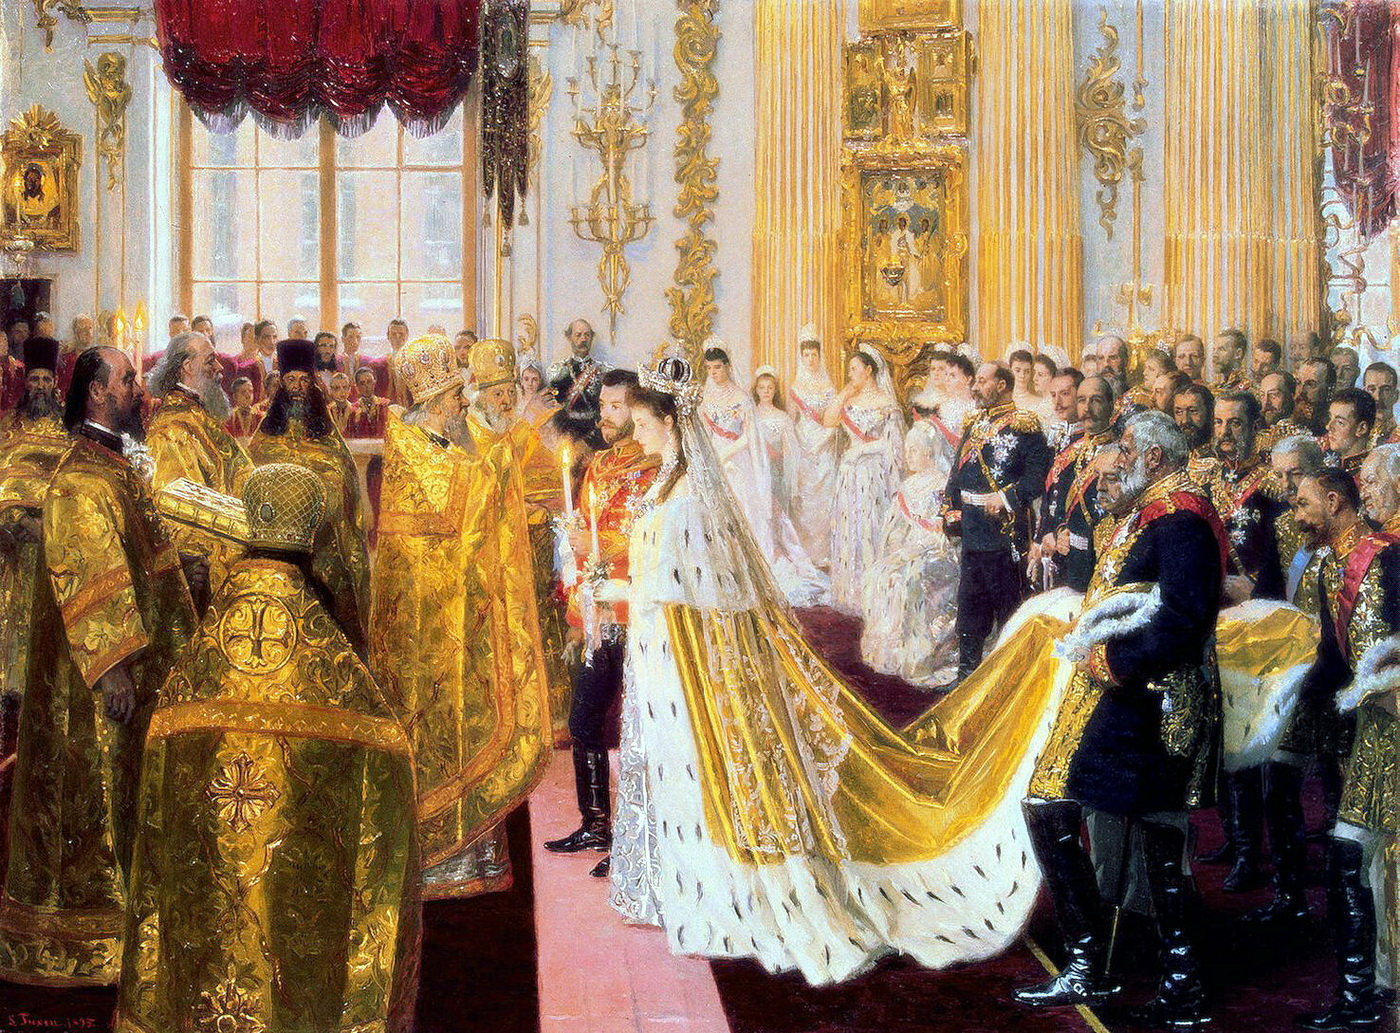 Wedding of Nicholas II and Alexandra Feodorovna by Laurits Tuxen 1895 Hermitage-1400